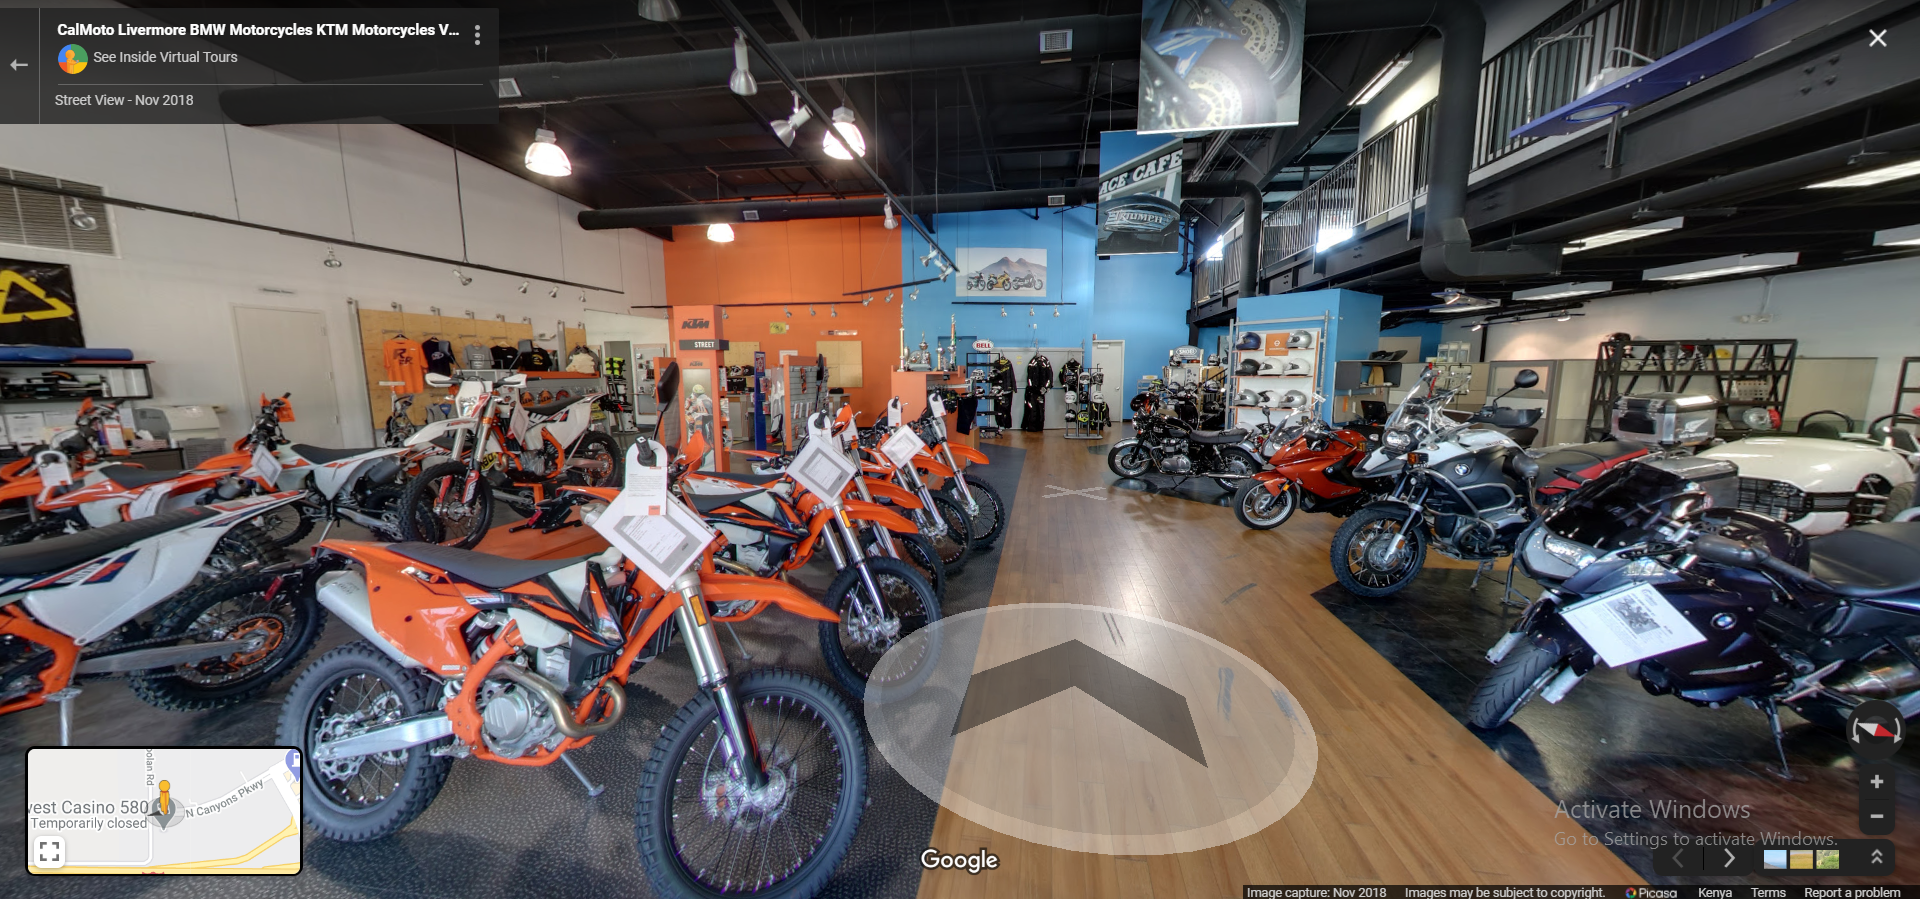 CalMoto Livermore BMW Motorcycles KTM Motorcycles  Livermore